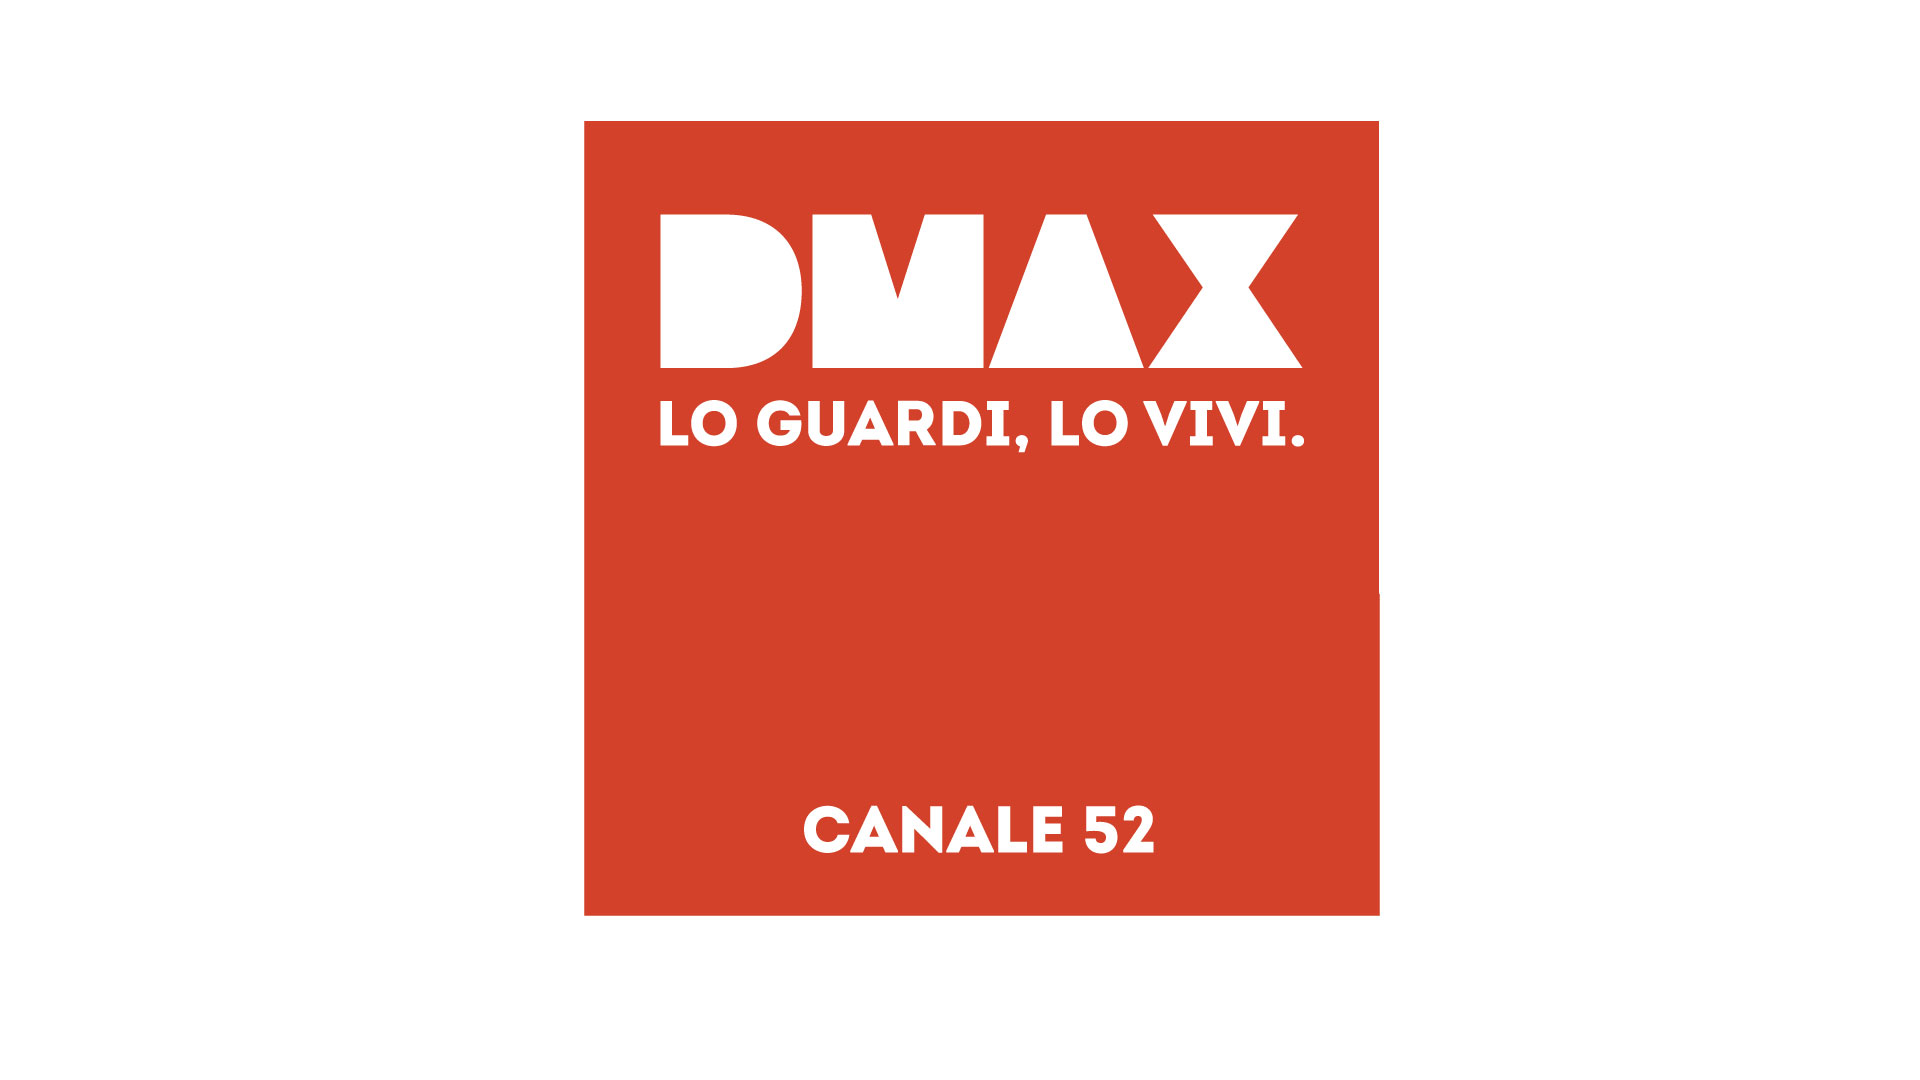 DMAX-CANALE-52